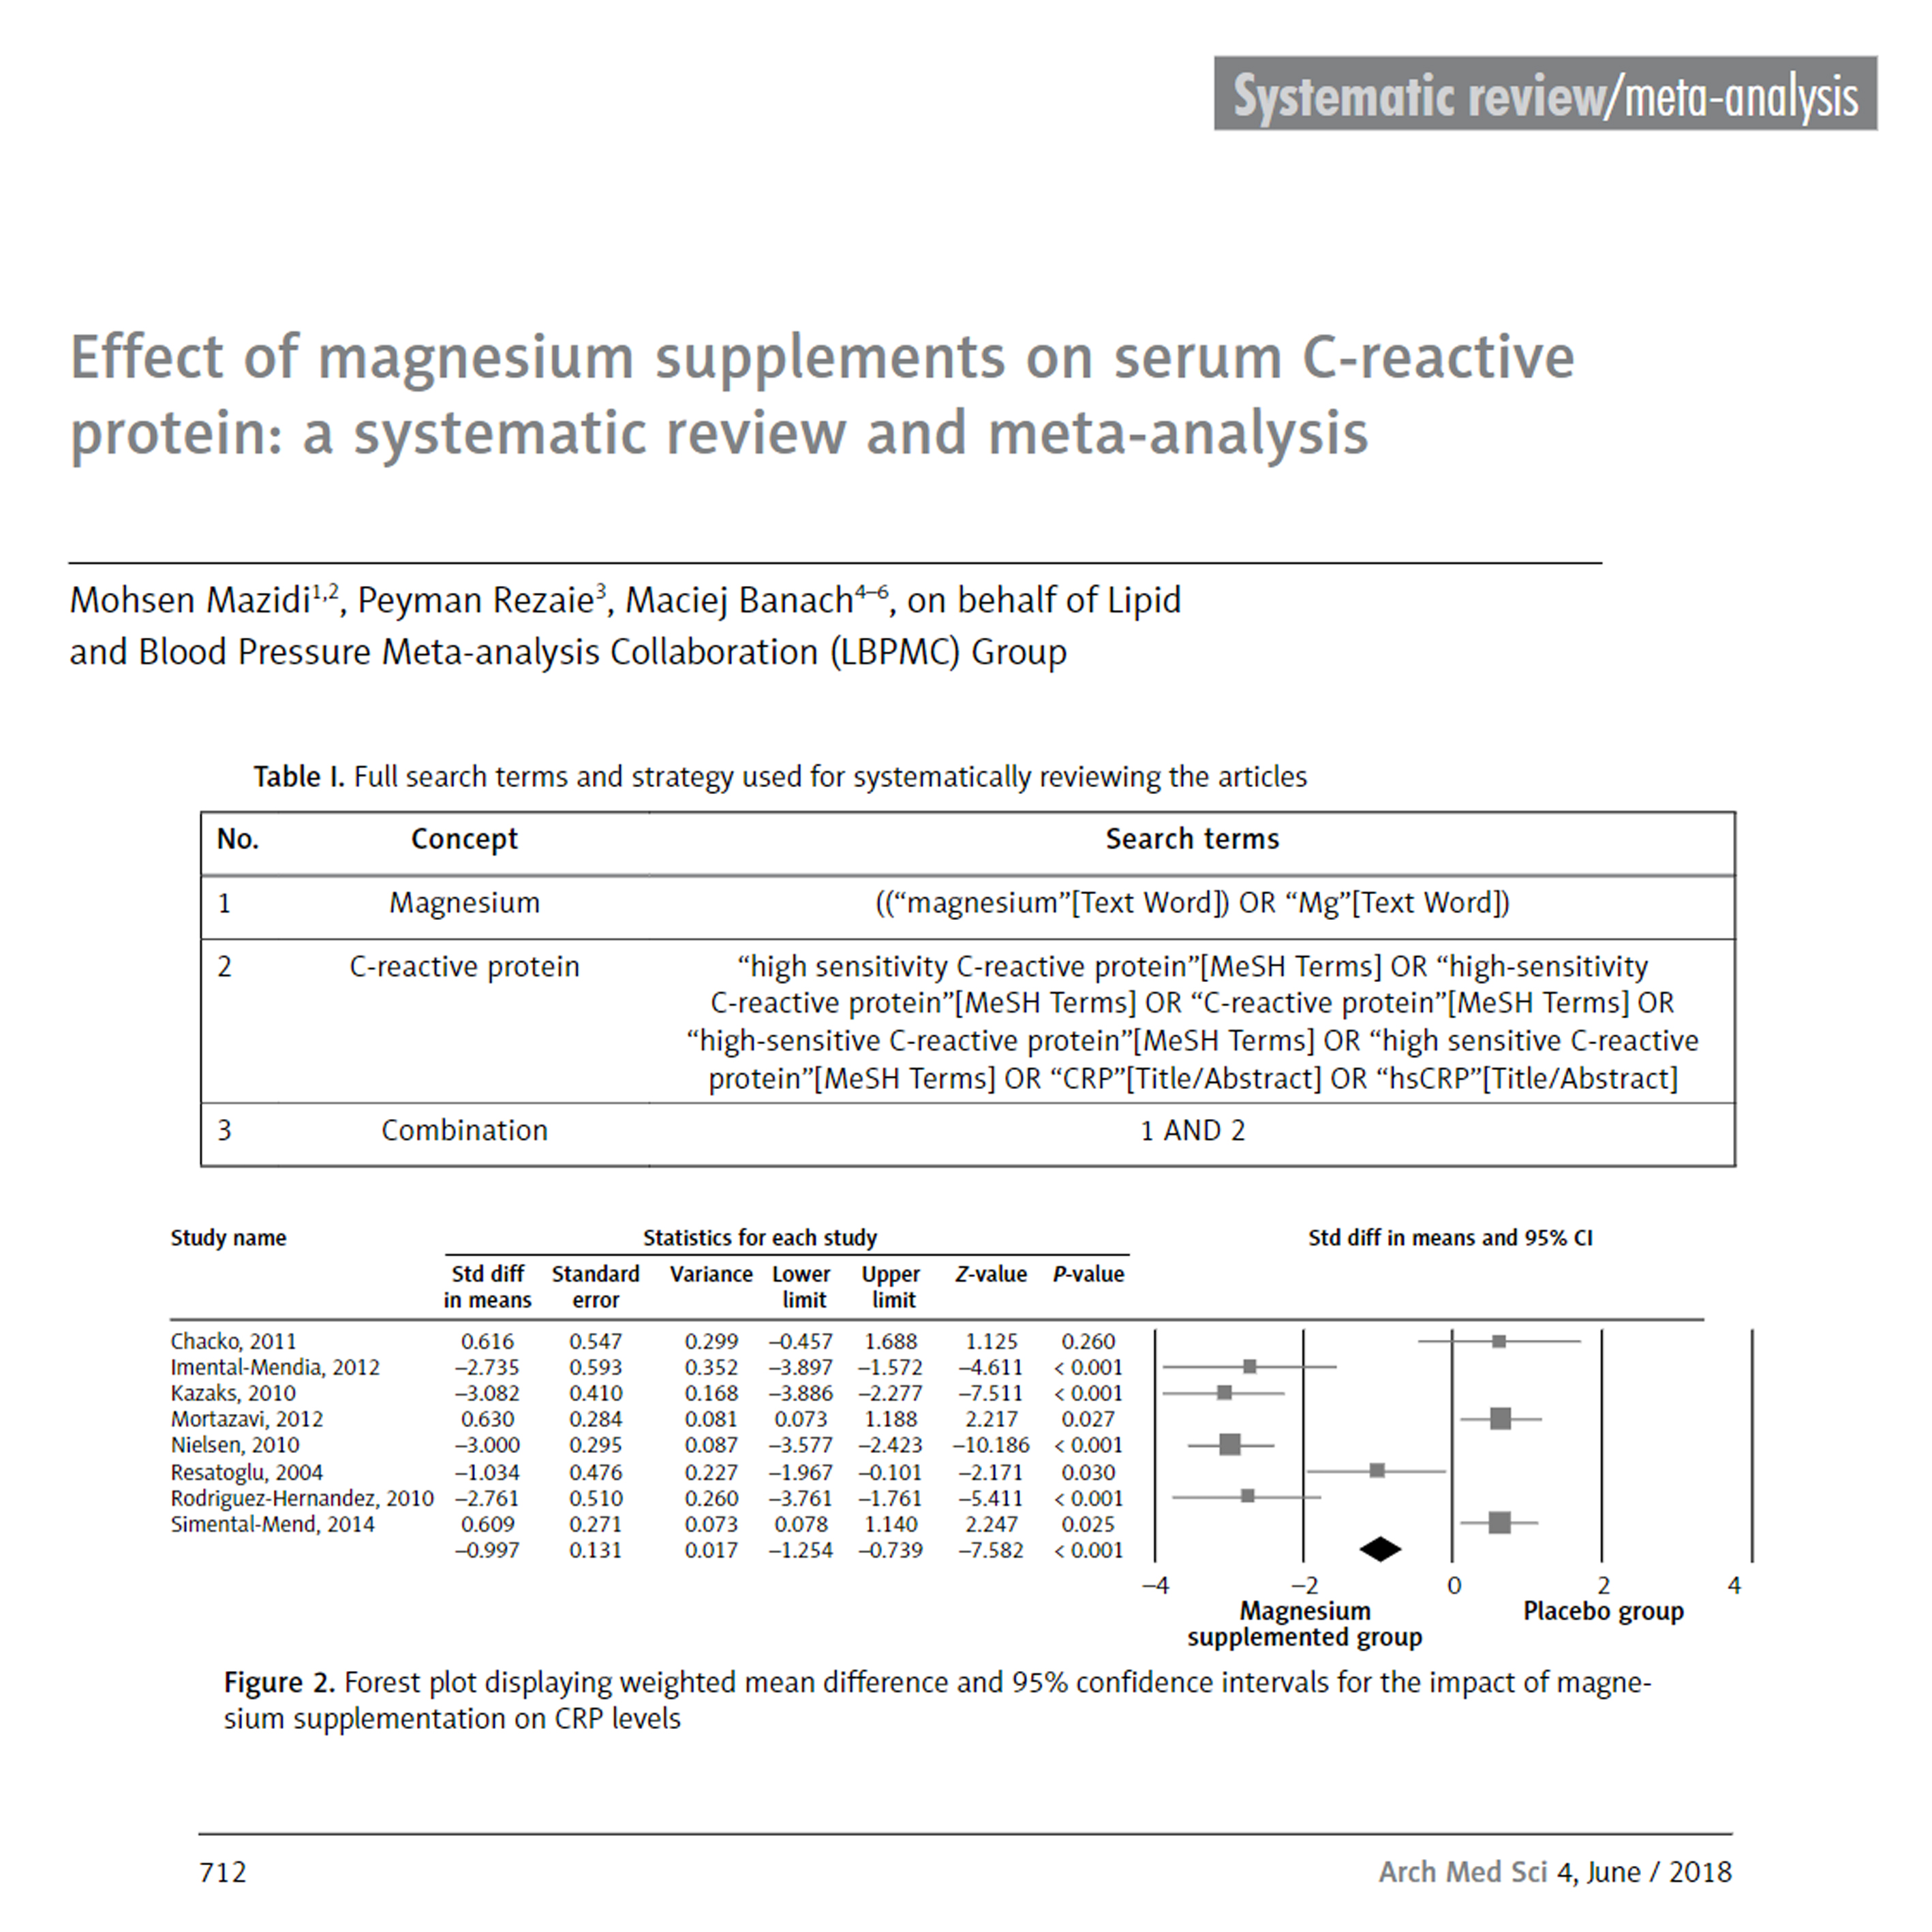 Effect of magnesium supplements on serum C-reactive protein: a systematic review and meta-analysis